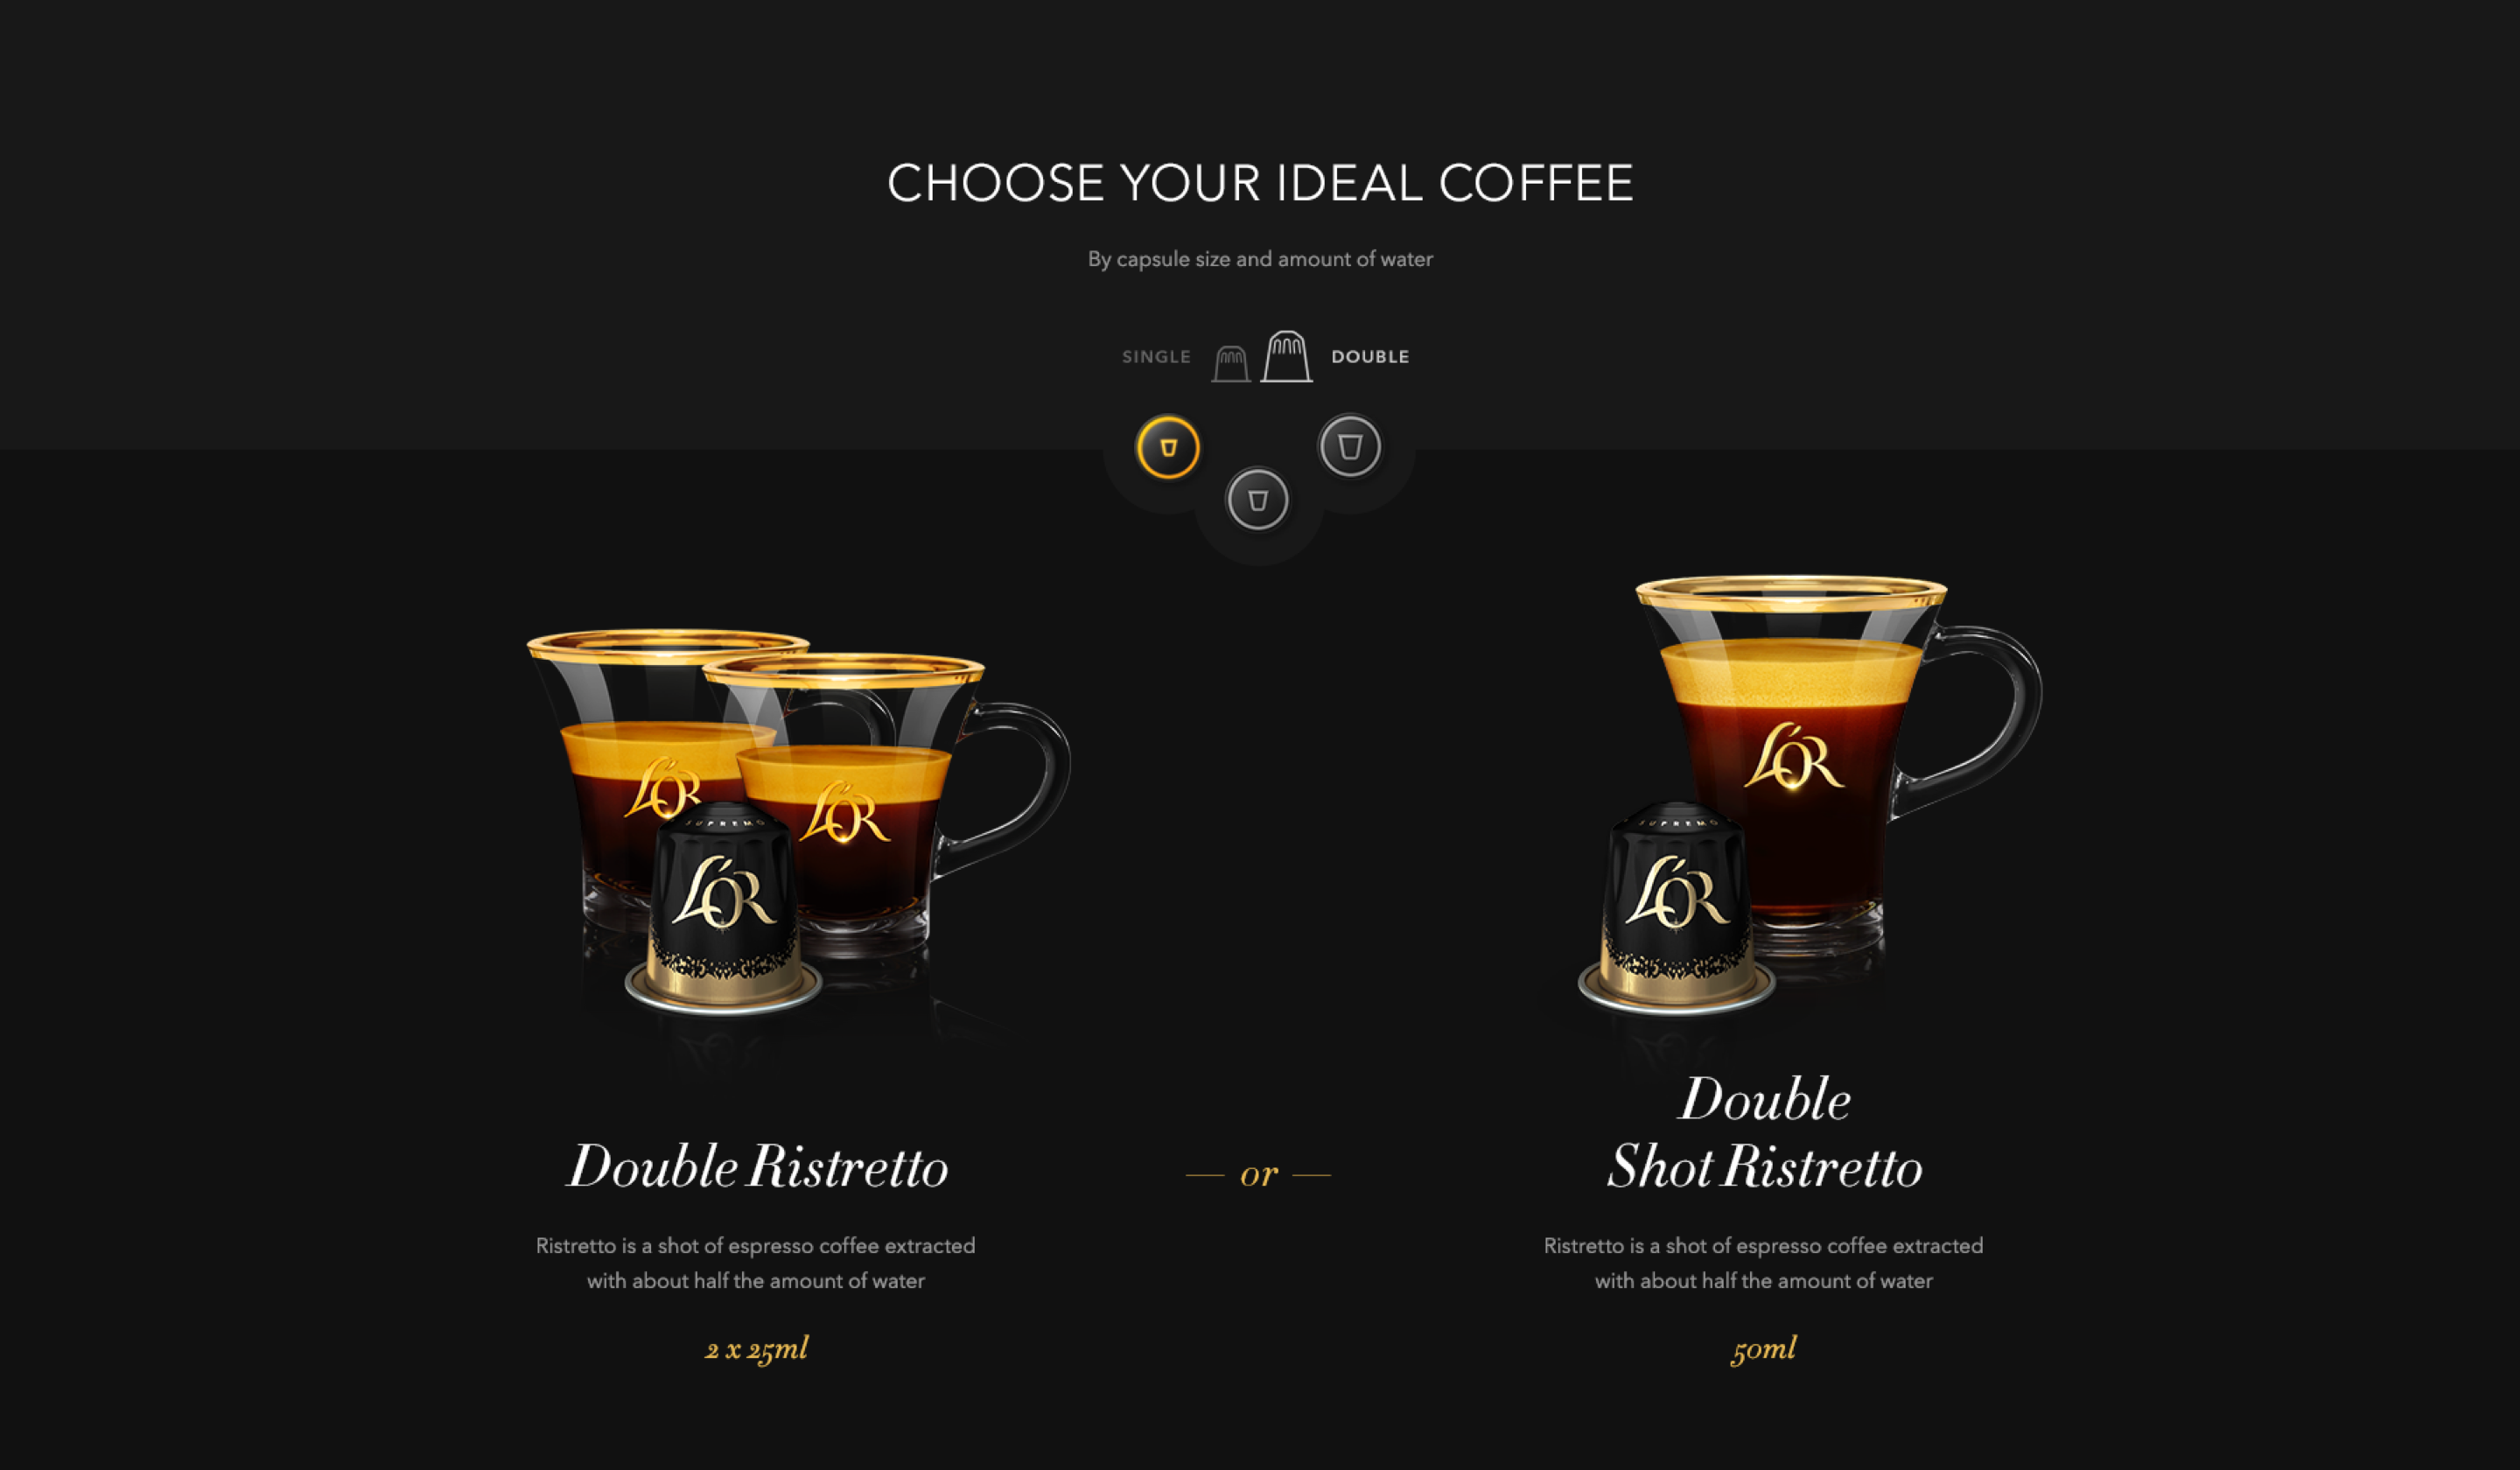 017_BUTTON_UI_DOUBLE_RISTRETTO